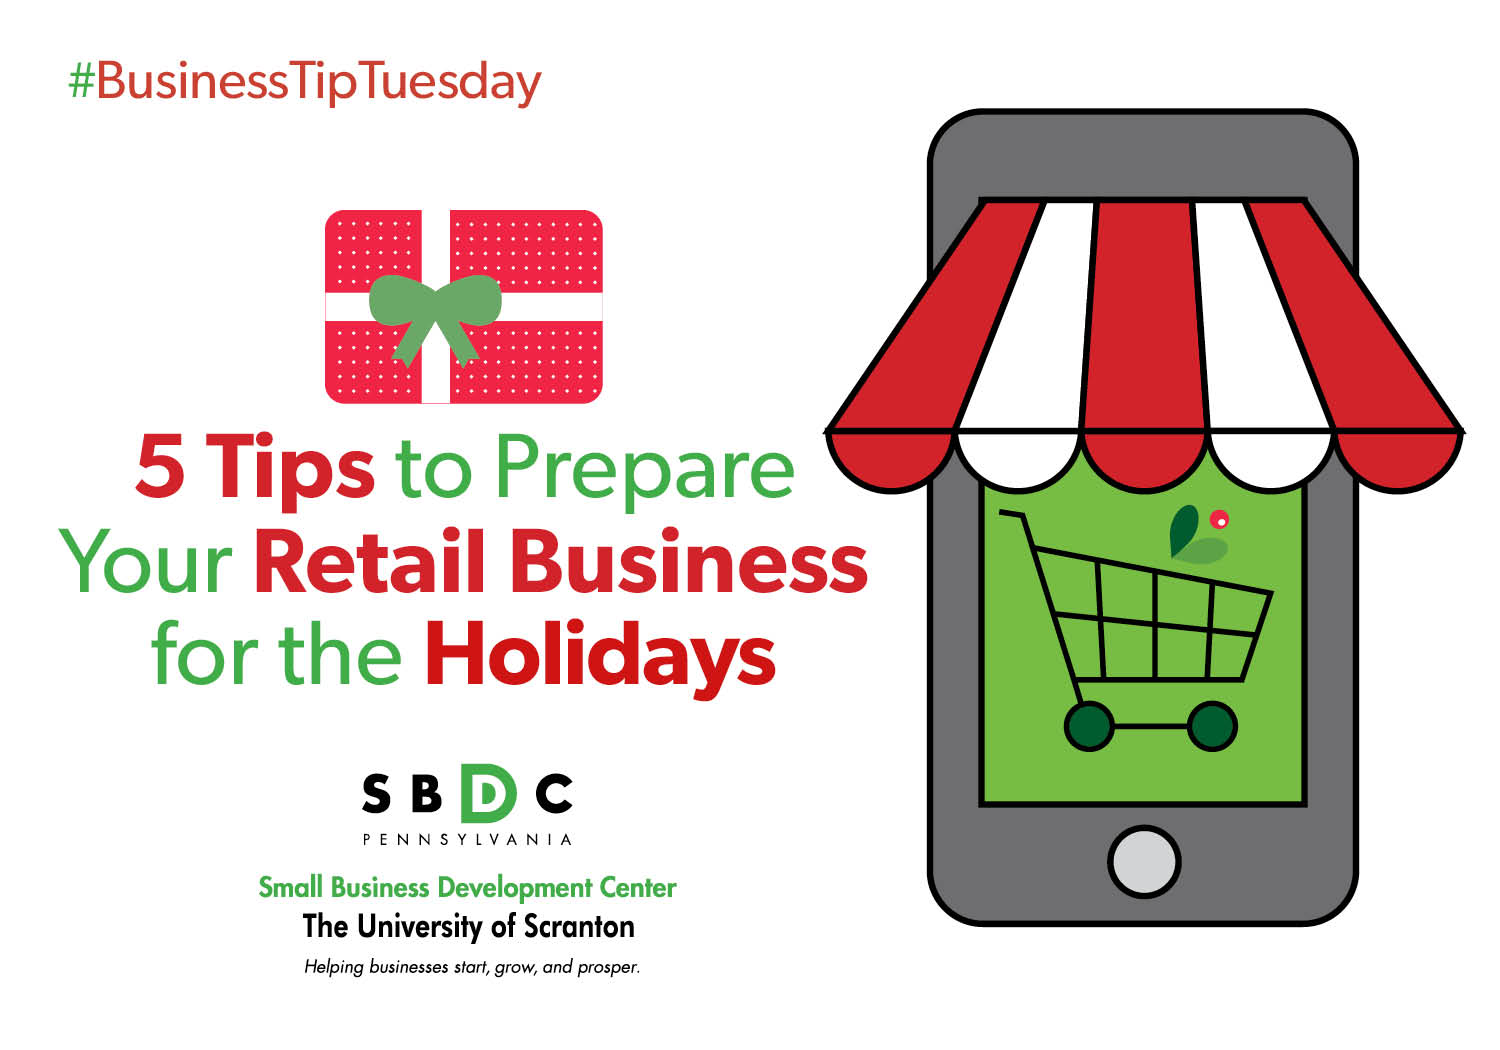 5 Tips to Prepare Your Retail Business for the Holidays